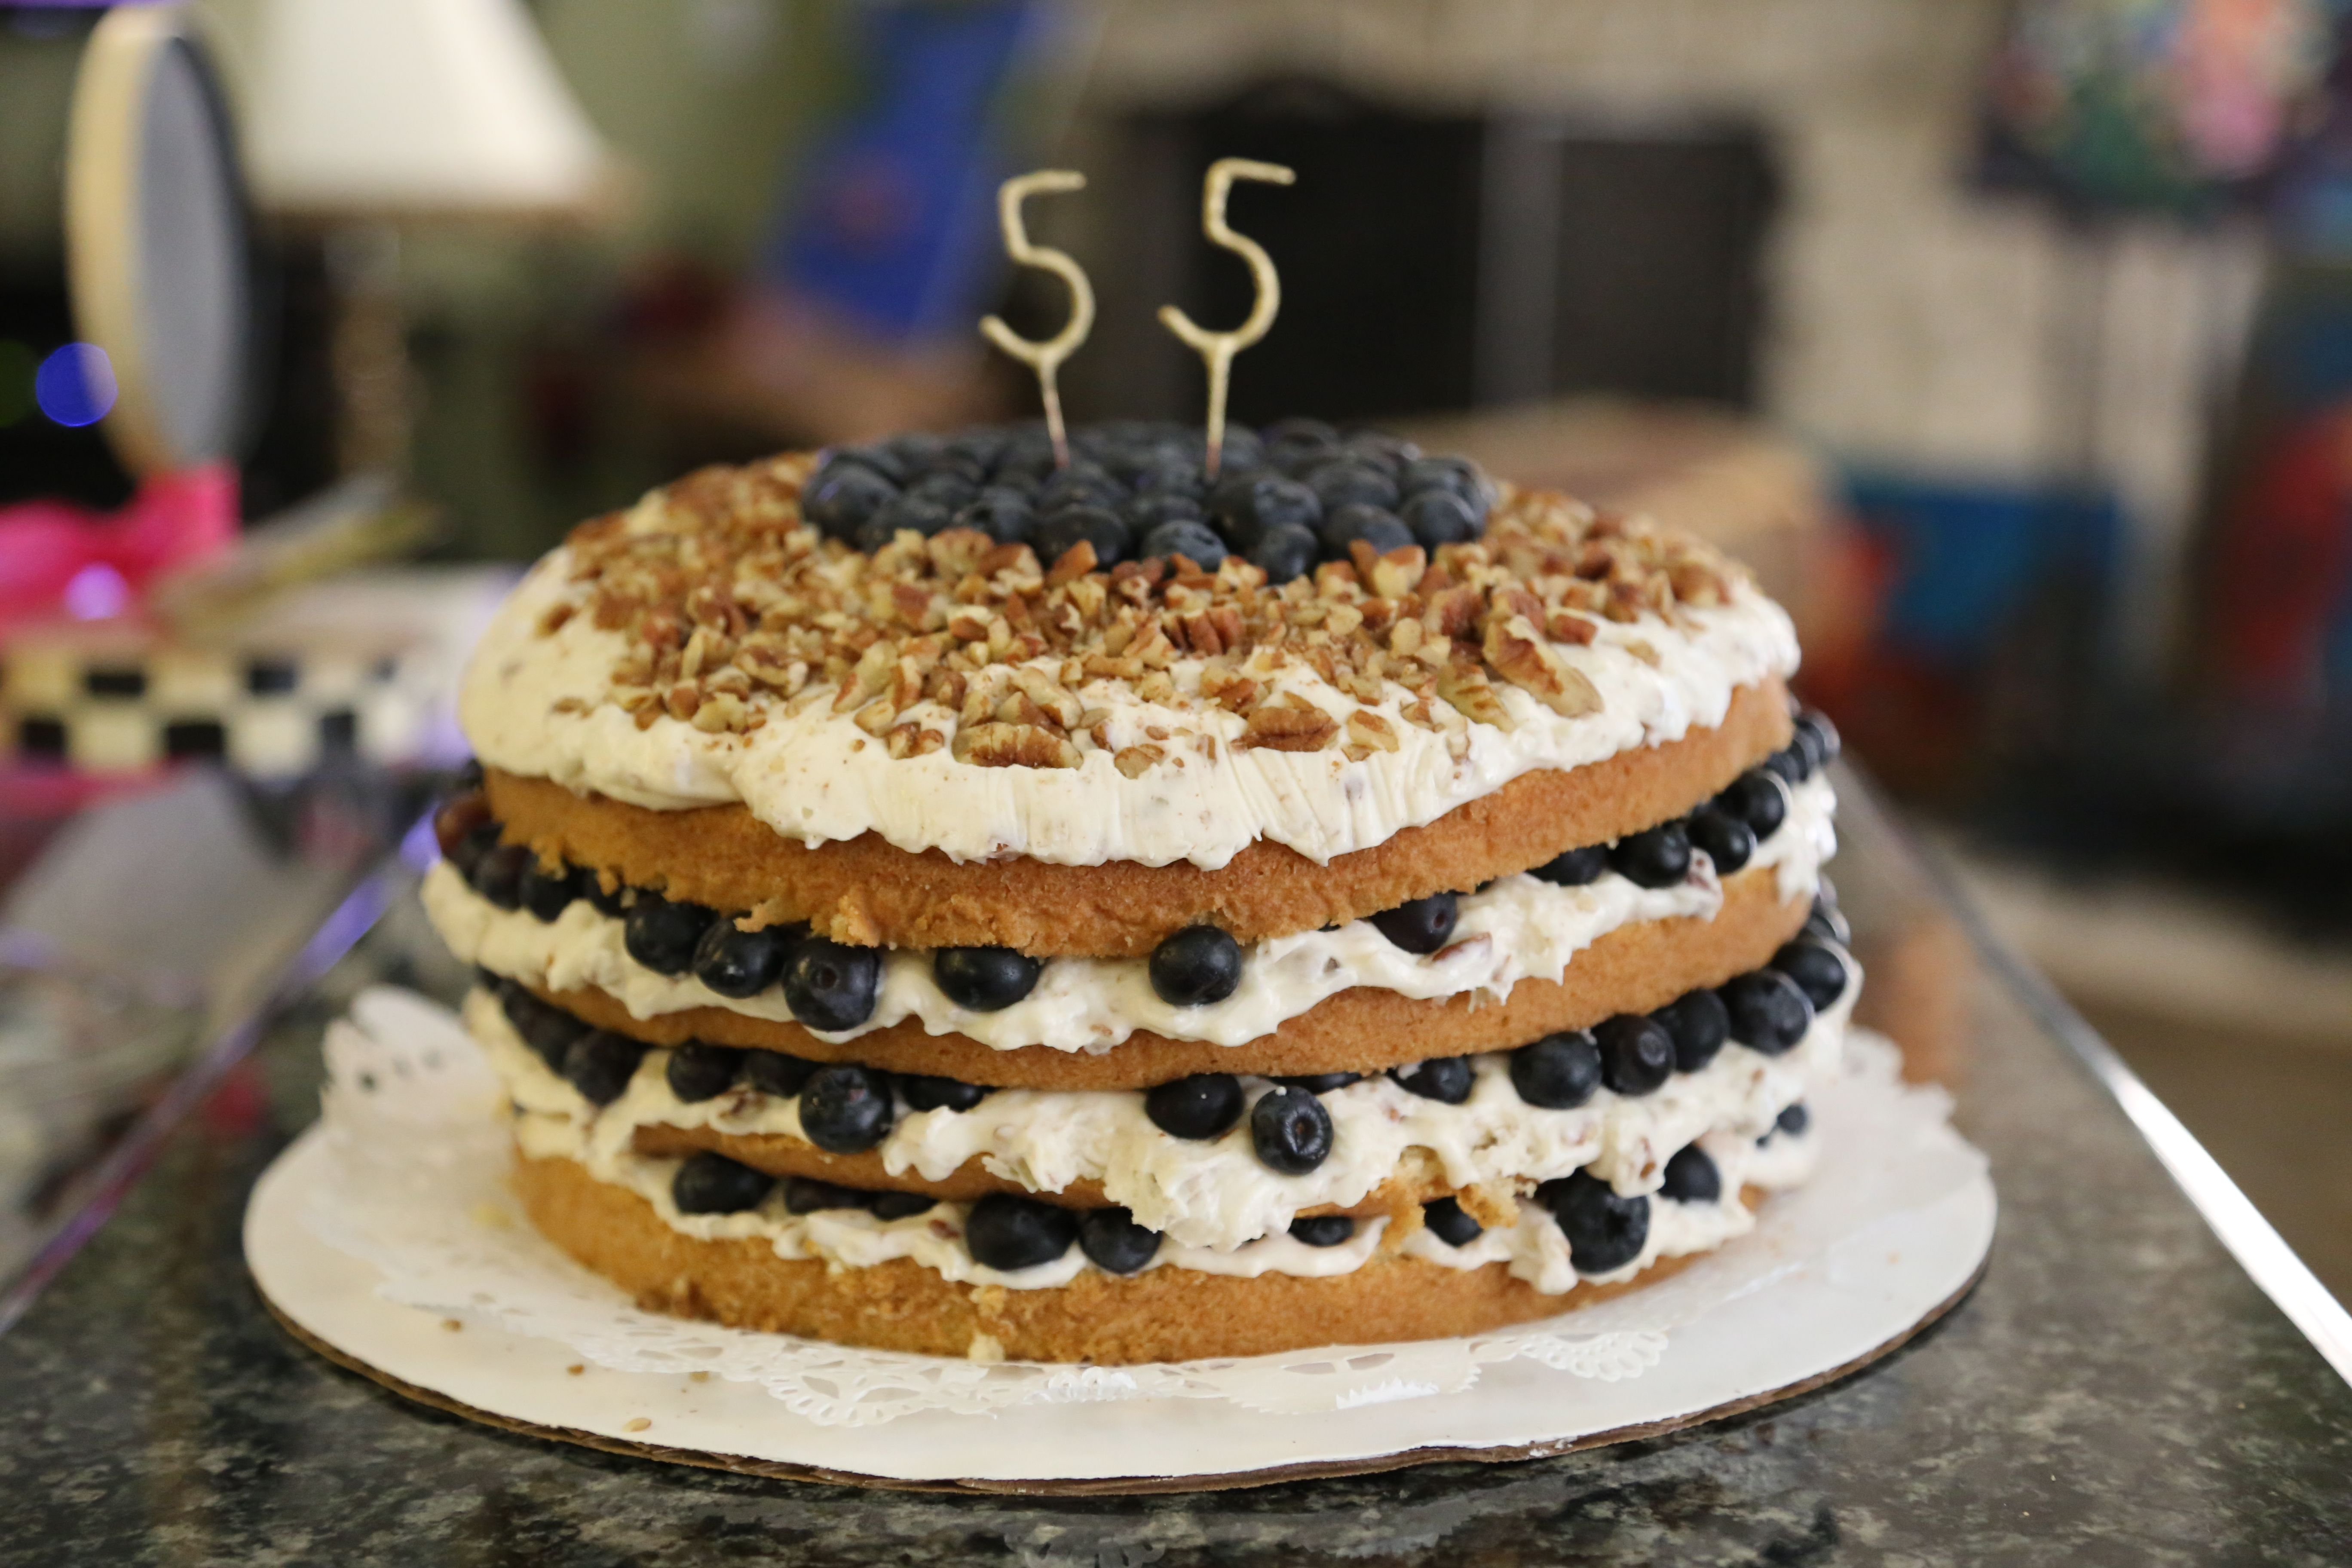 Happy Birthday Cake!!  Made from the Pioneer Woman's recipe!!  Blueberry Italian Cream.....fabulously delicious!!